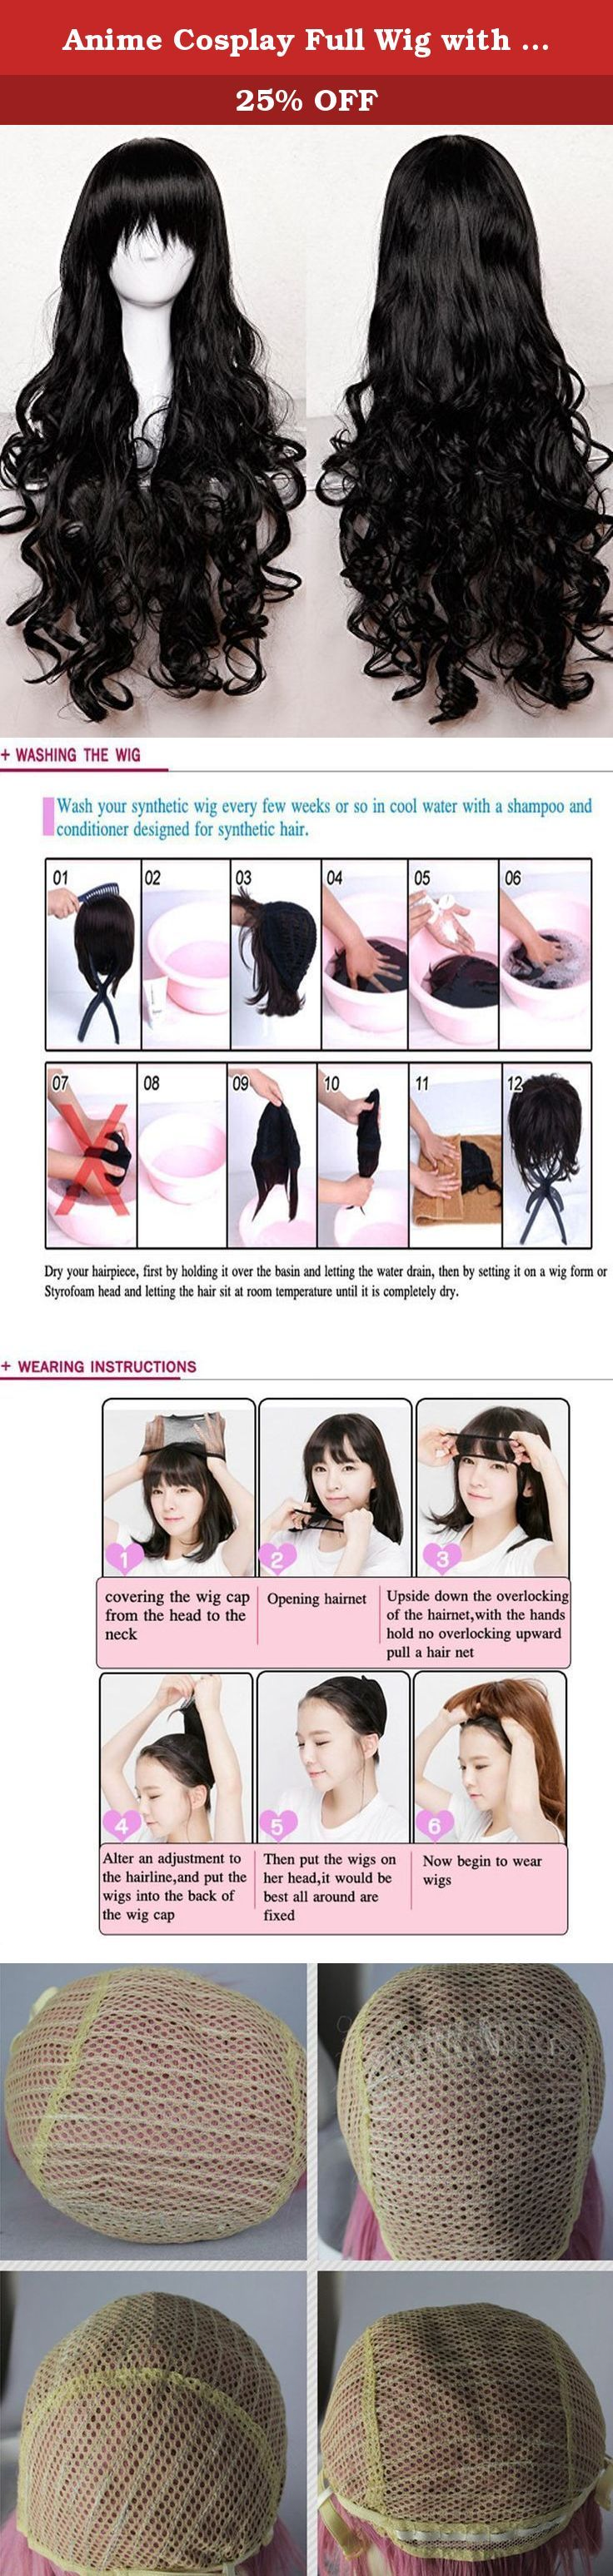 Anime Cosplay Full Wig with Bangs 24-40inch 13 Colors Japanese Kanekalon Fiber Heat Resistant Synthetic Wig Long Curly Wavy Vogue 32'' / 80cm for Women Girls Lady Fashion. Materials:Imported Kanekalon Fiber from Japan(also known as KK wire) Style:Side Bangs/M Bangs Length:32inch Cap Size: Average Suitable Occasions: Halloween,cosplay,club,concerts,costume,theme parties,bachelorette party,weddings,daily use,dating,conventions,masquerades,prom,evening out,carnival,April Fool's Day and any...